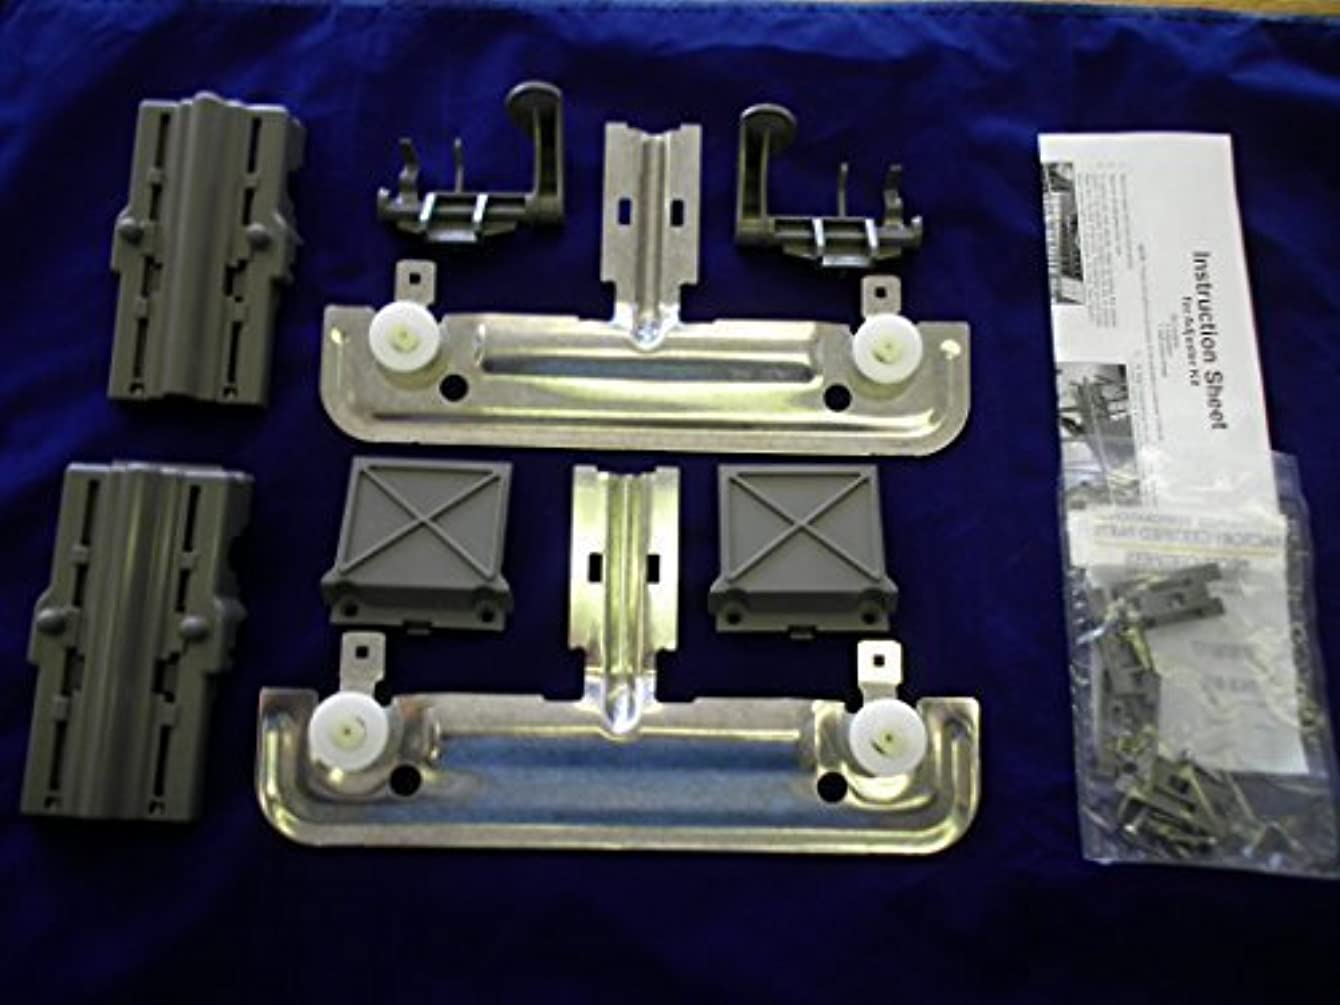 W10712395 RACK ADJUSTER KIT FOR KITCHENAID WHIRLPOOL AND JENN-AIR DISHWASHERS REPLACES PART NUMBER W10350375 COMPLETE KIT REPLACES BOTH SIDES, Model: W10712395, Tools & Outdoor Store